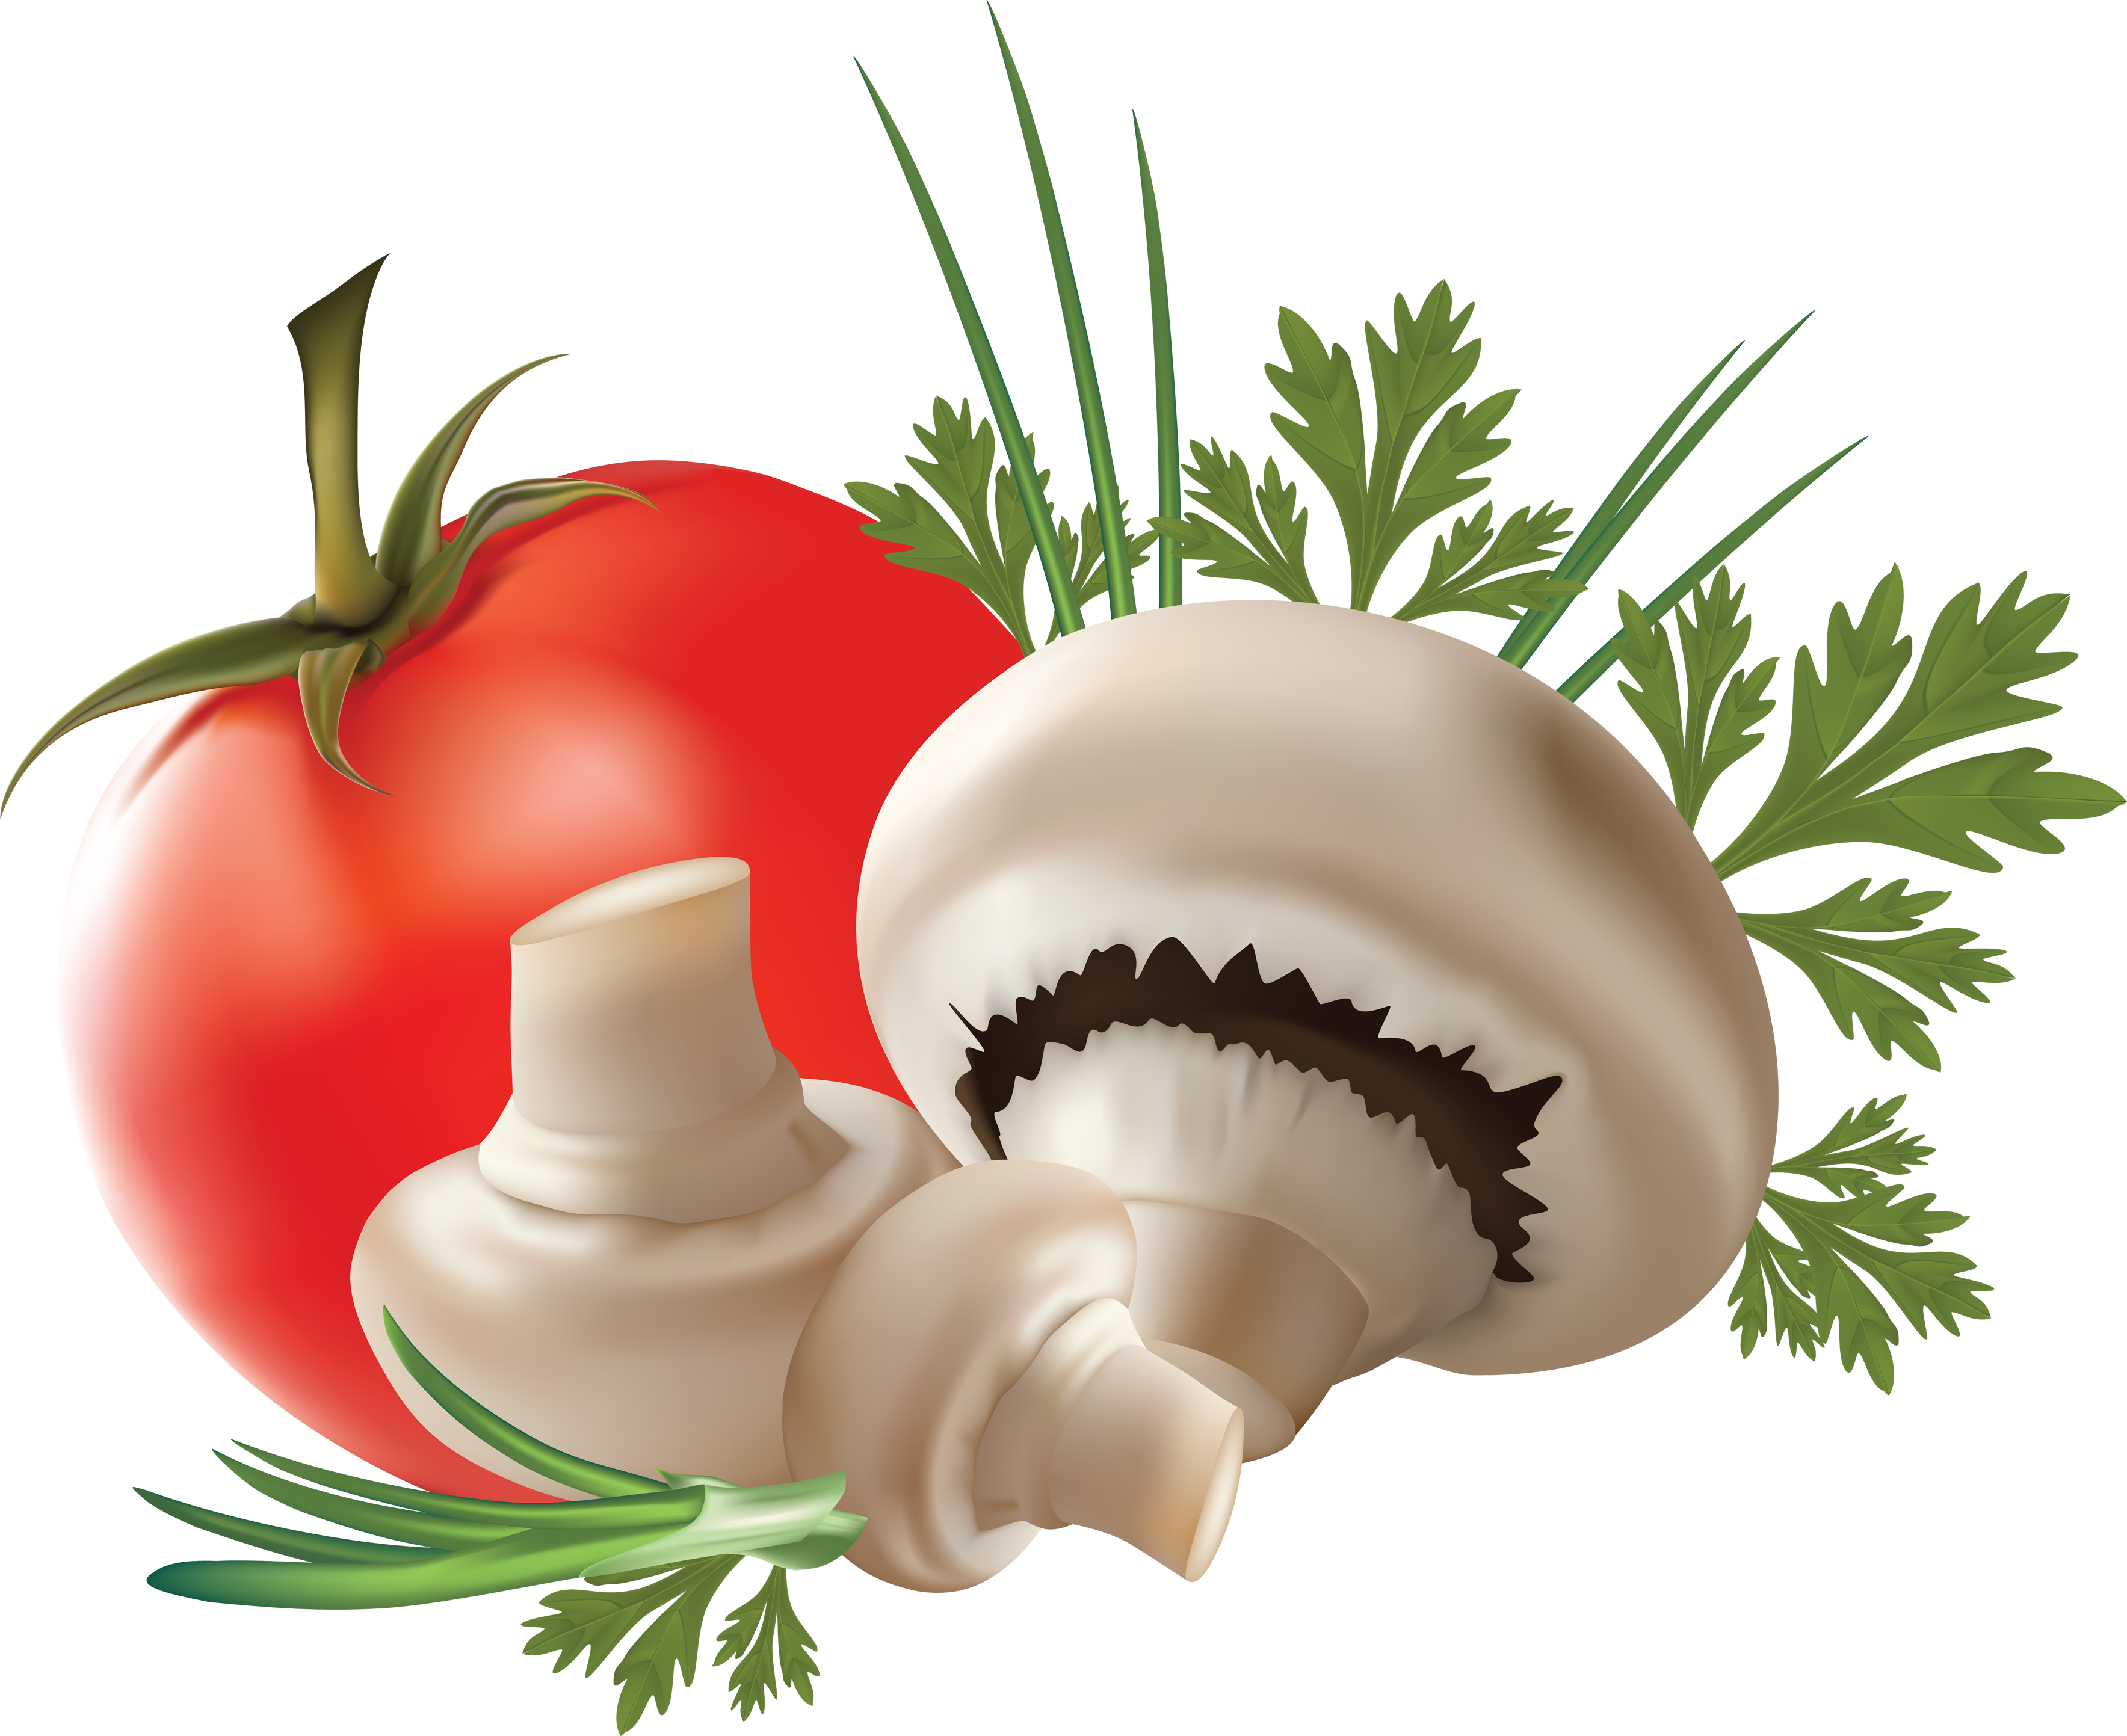 Mushroom with Tomato PNG Image